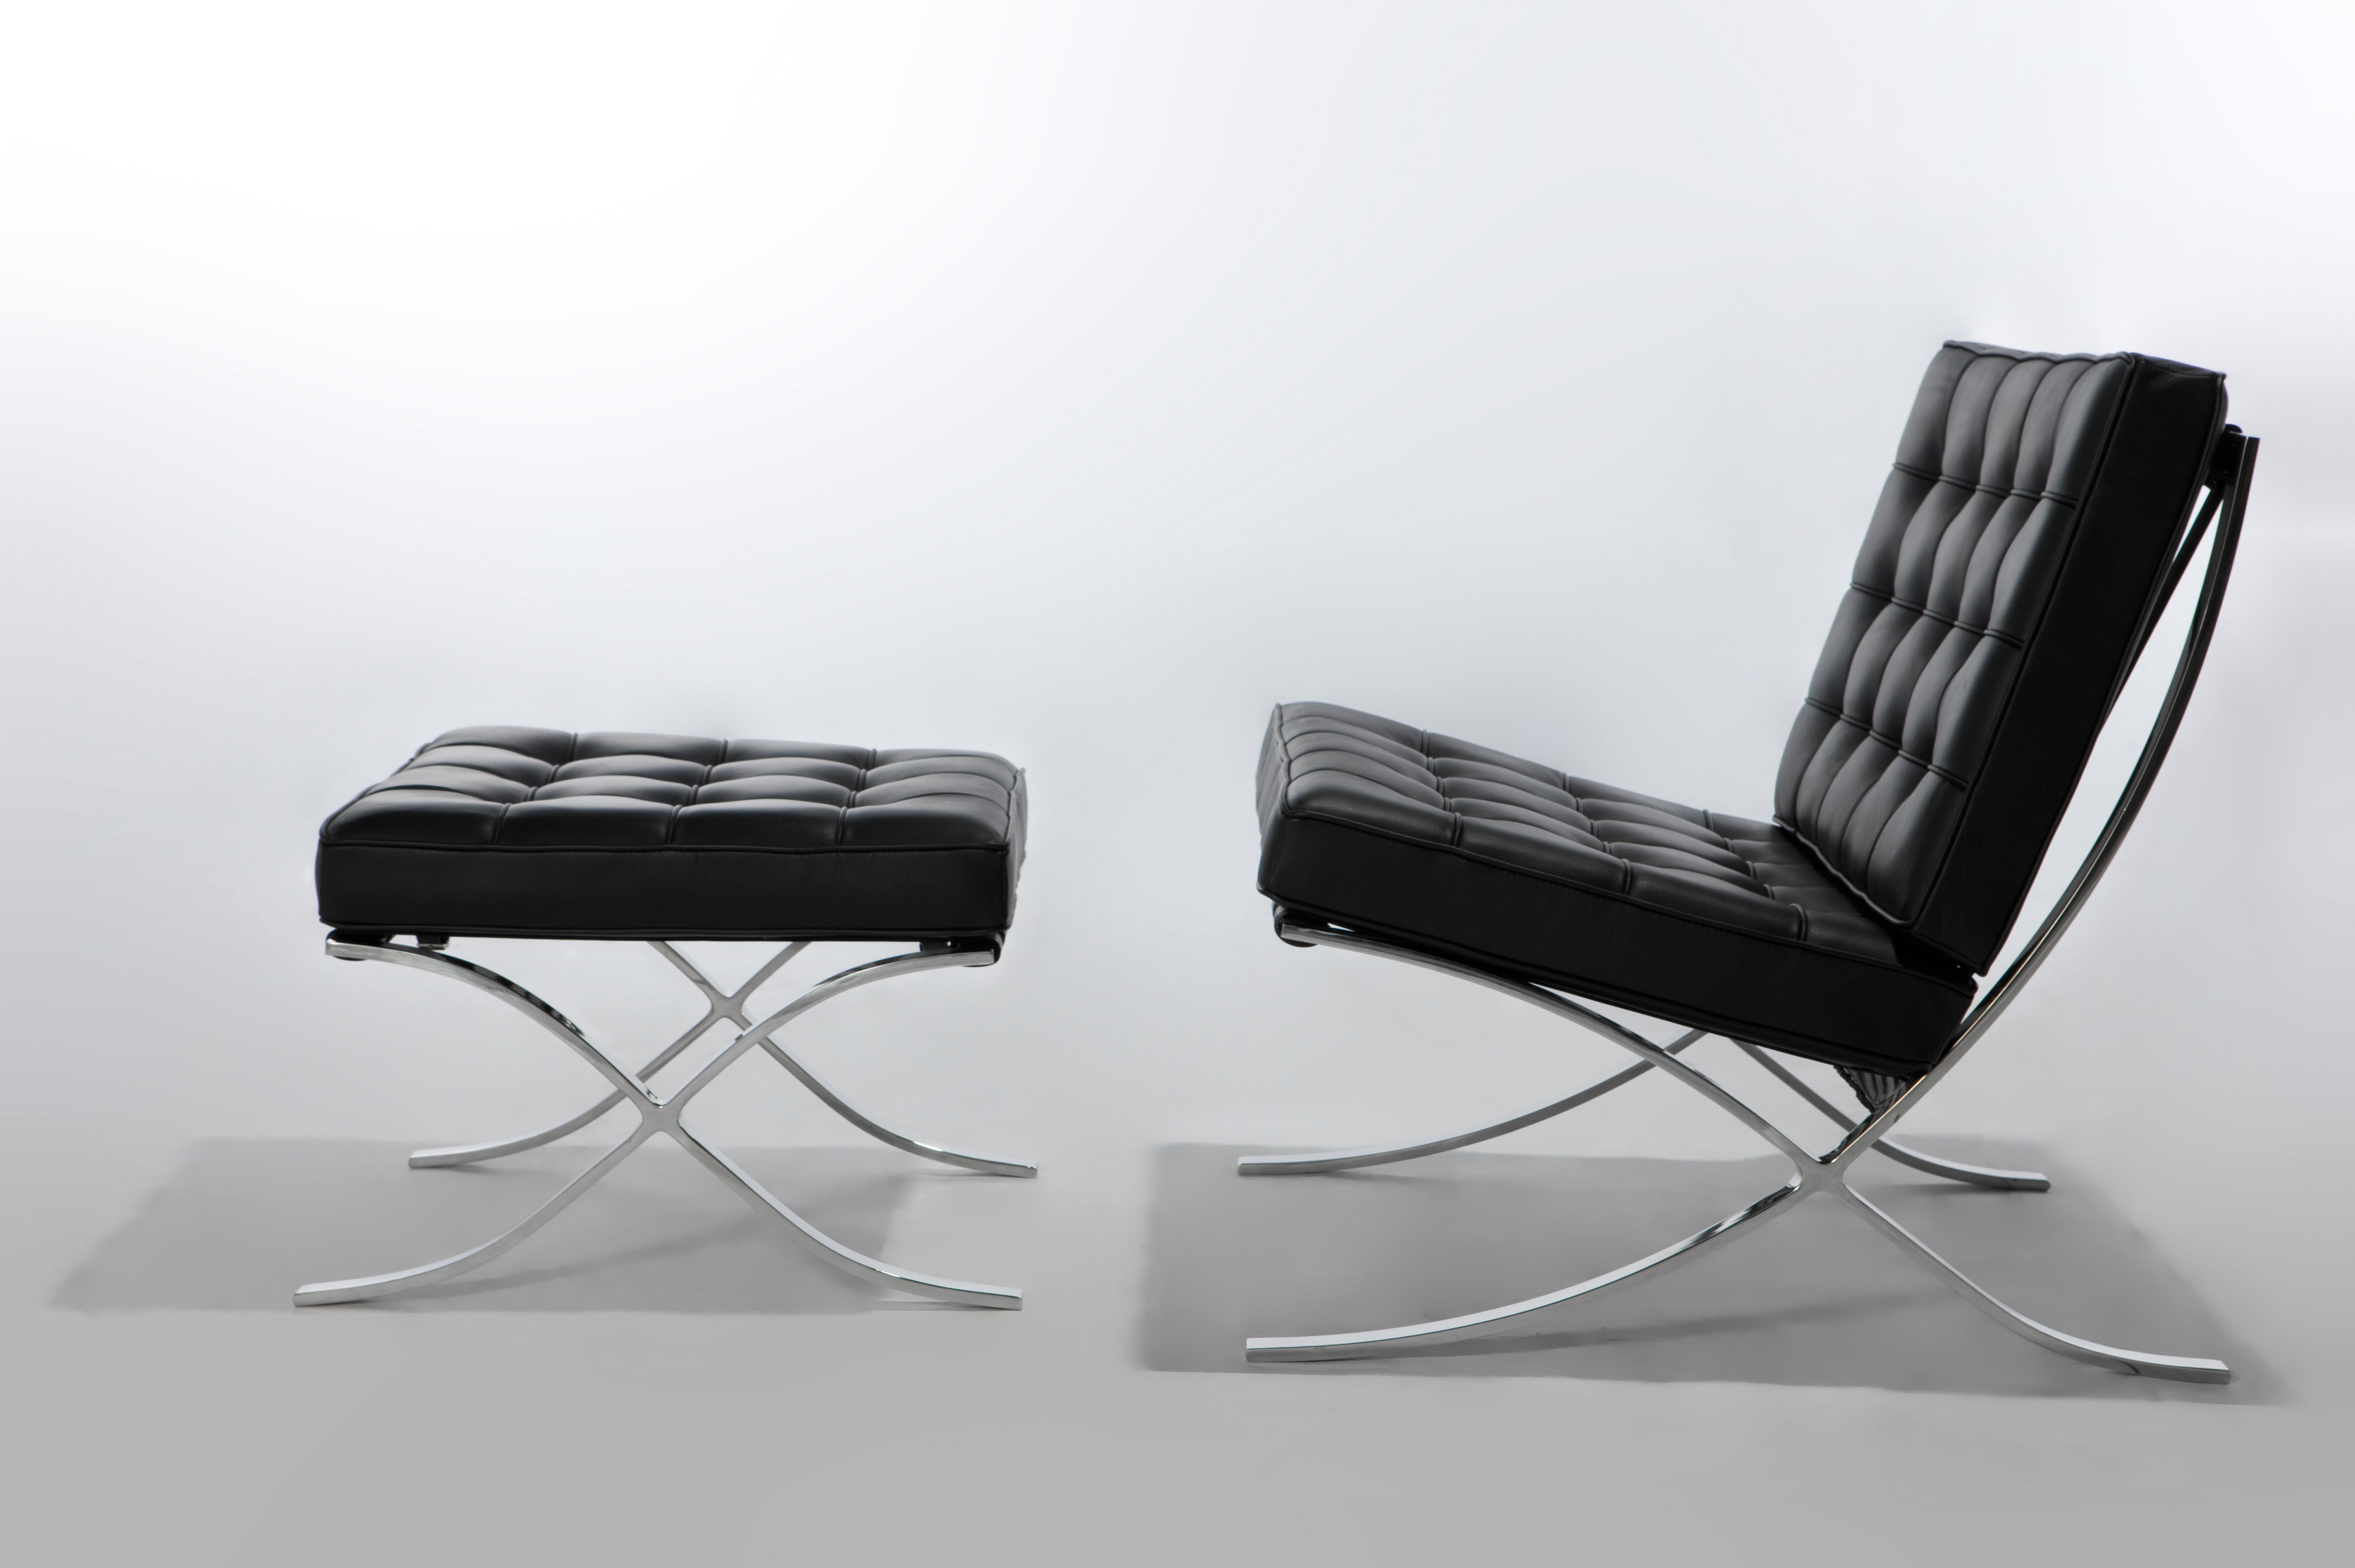 ludwig mies van der rohe one of the fathers of mid century design